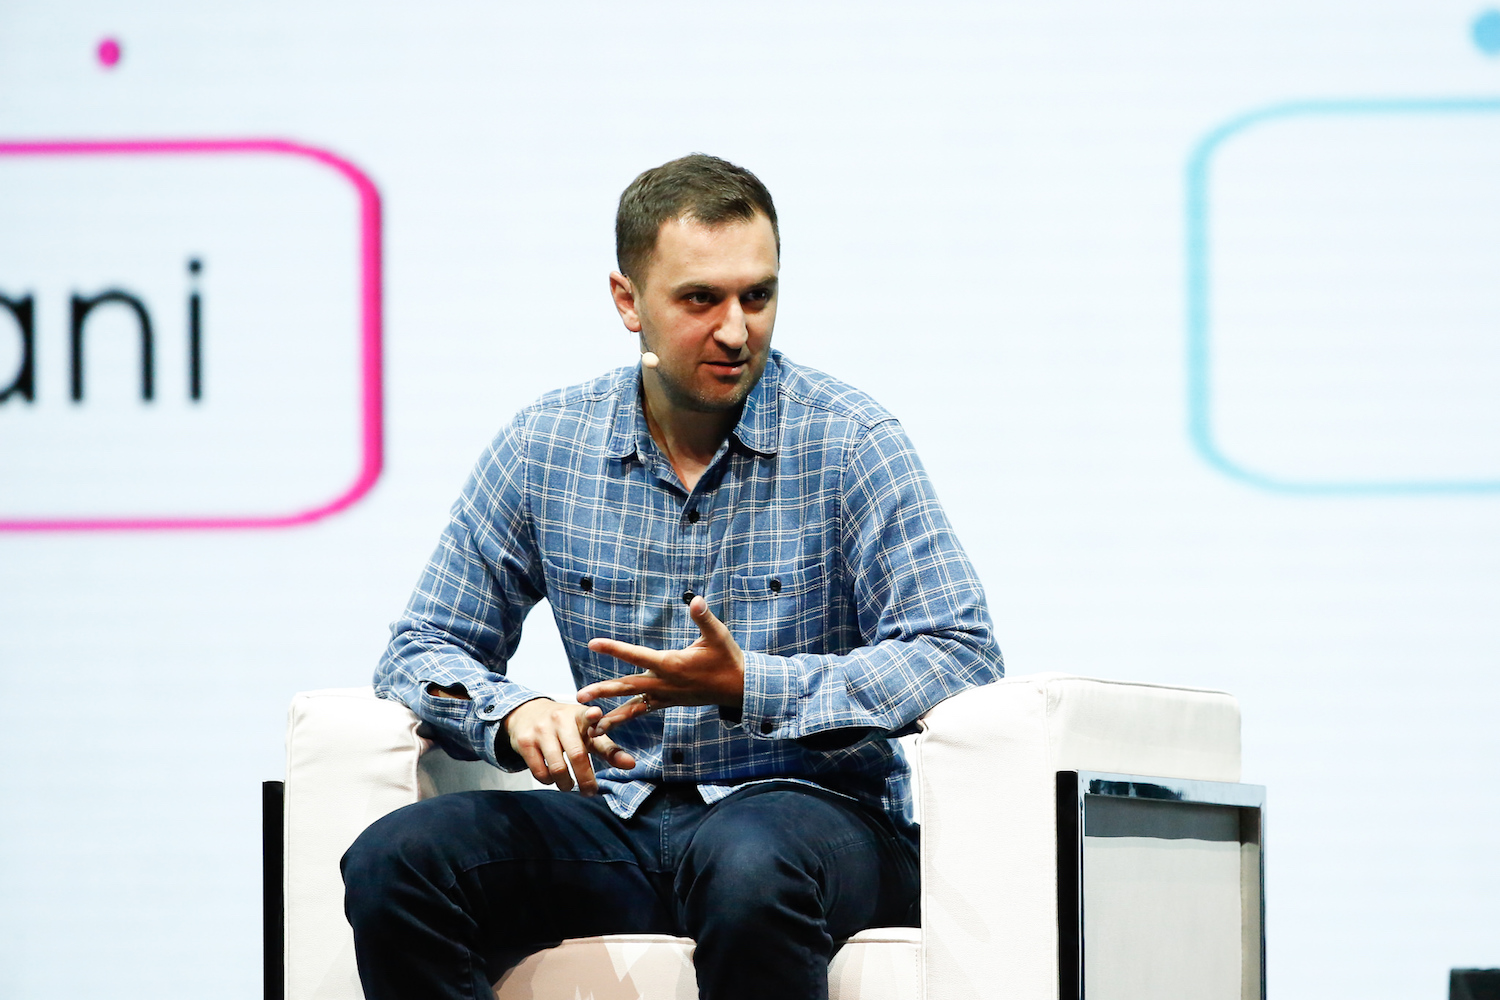 With Lyft continuing to pick up momentum in the ride-share industry and some game-changing tech in the works, John Zimmer shared what he is optimistic about.